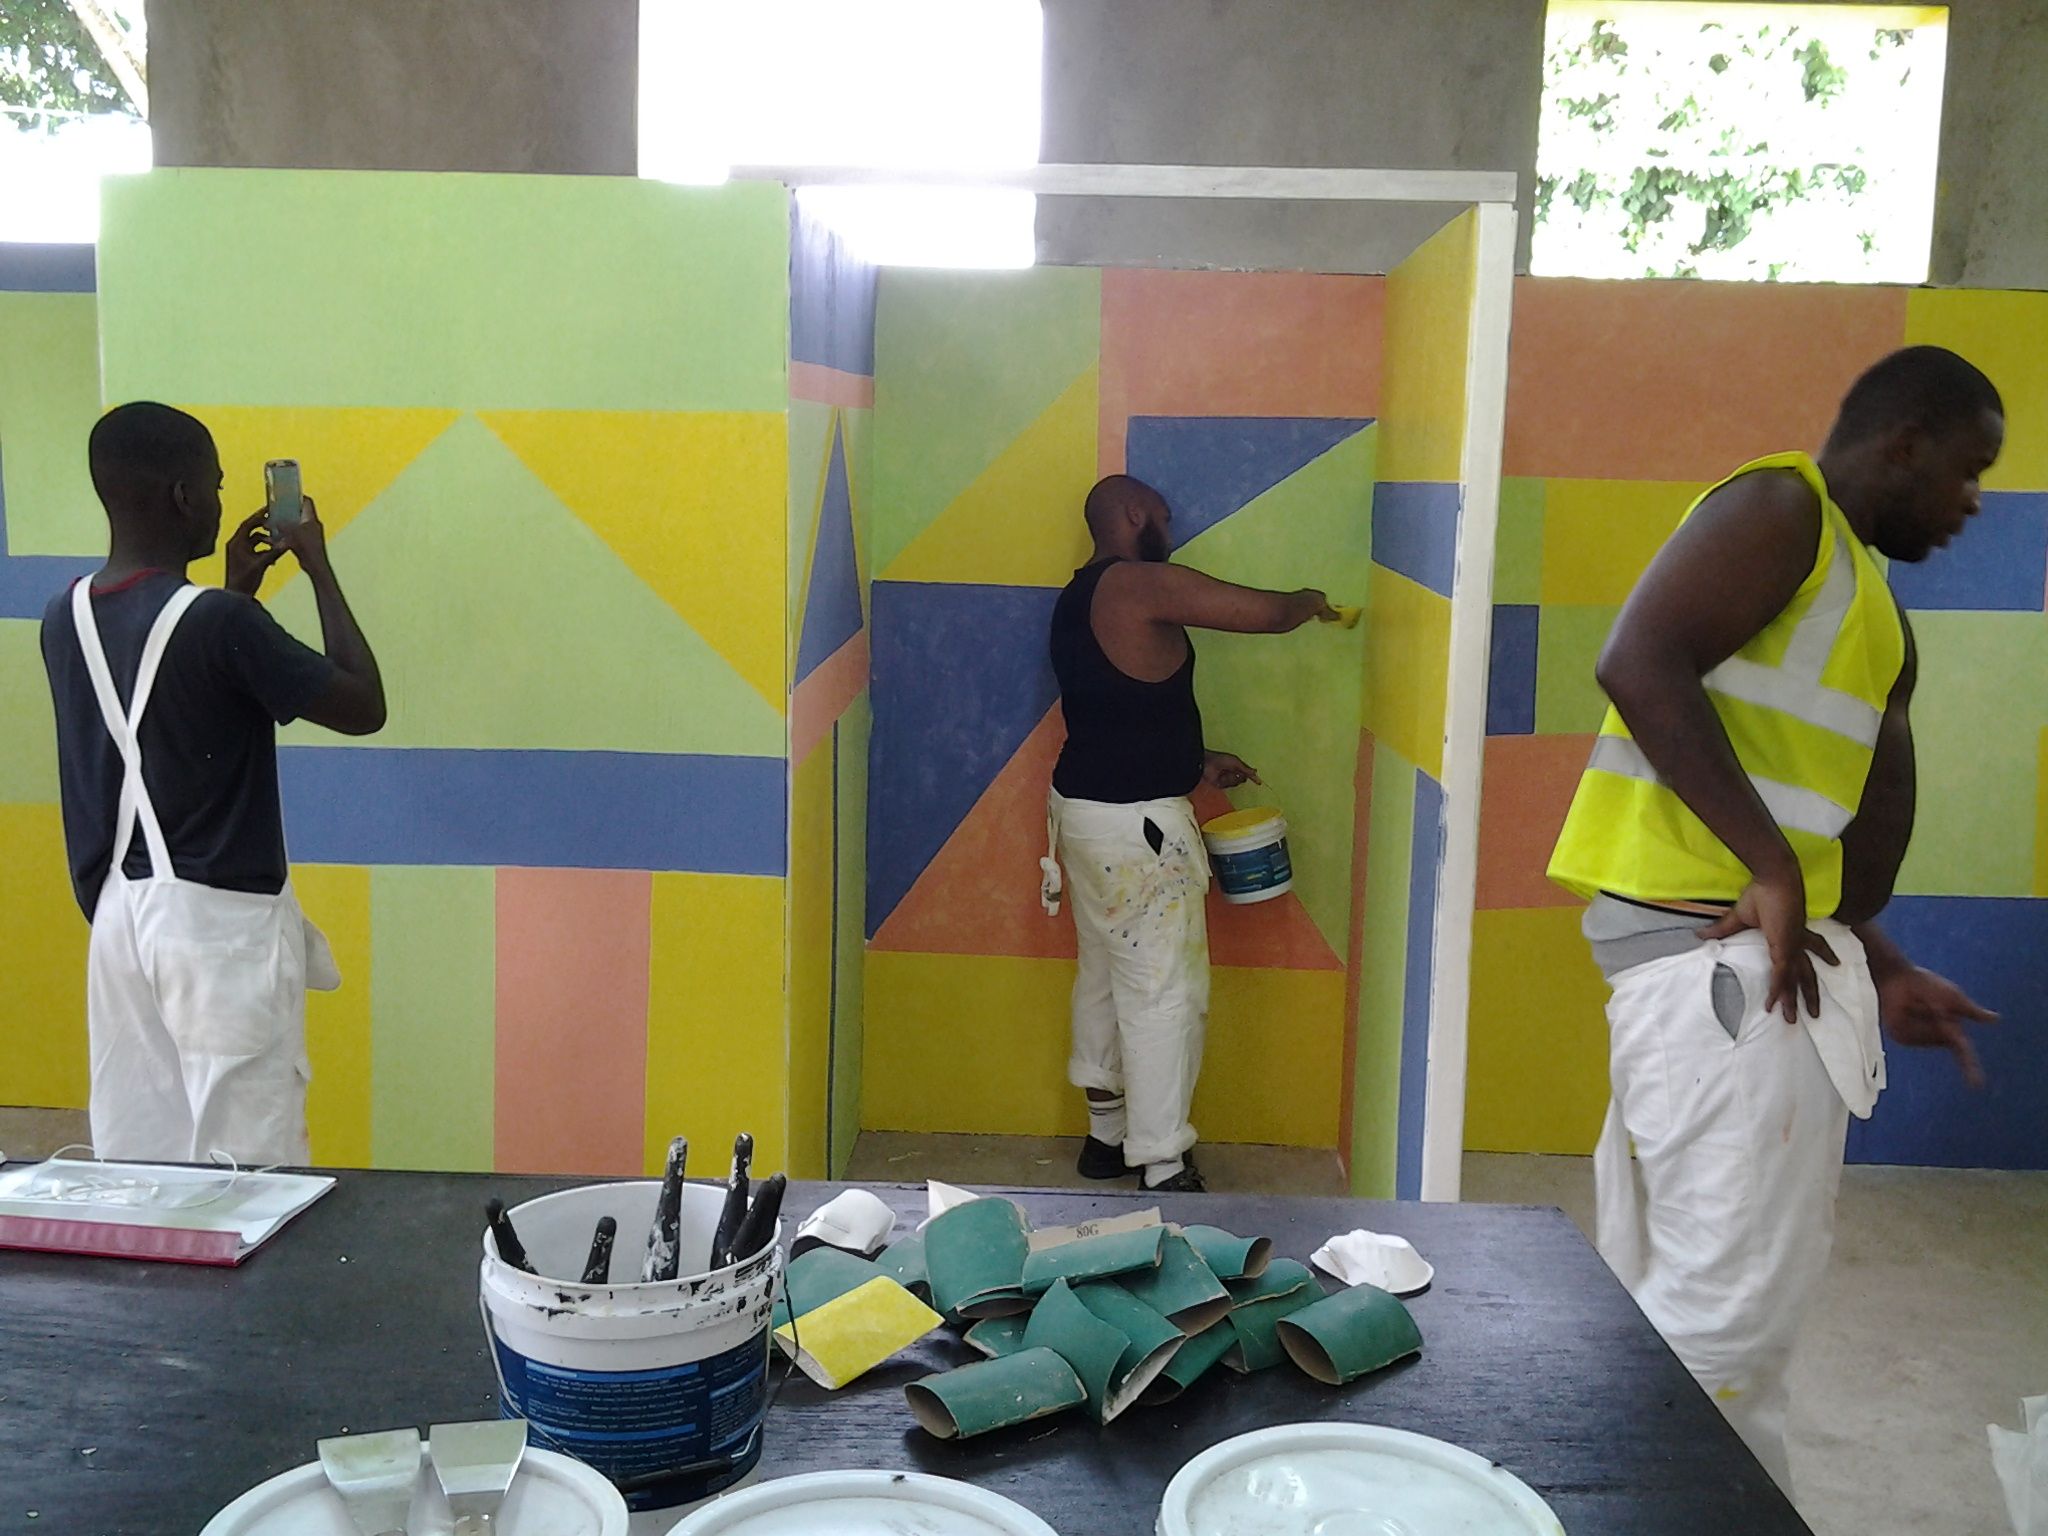 3 males/boys painting